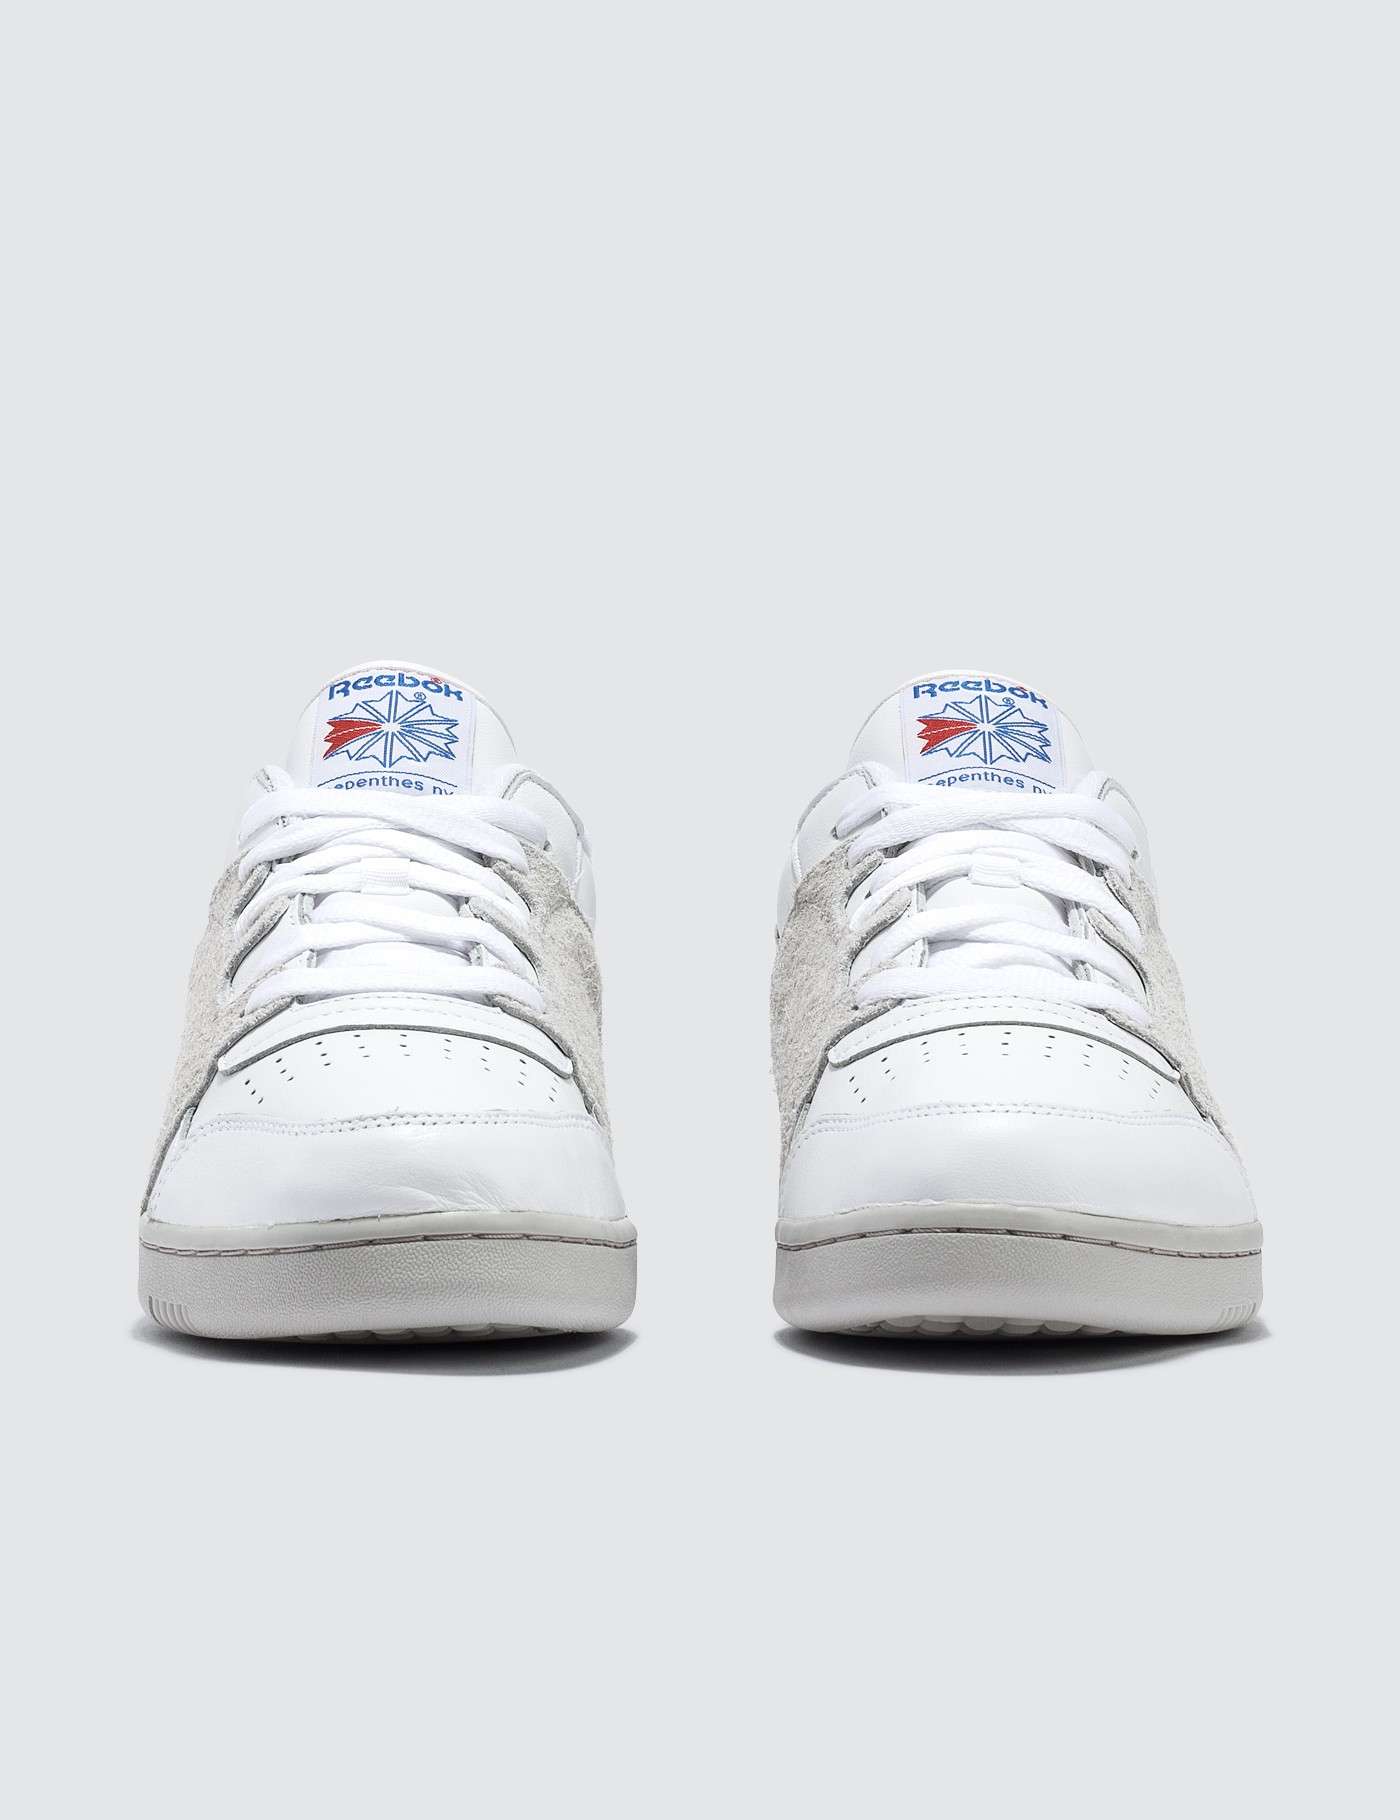 1b570015e94 Buy Original Reebok Nepenthes x Workout Plus at Indonesia ...